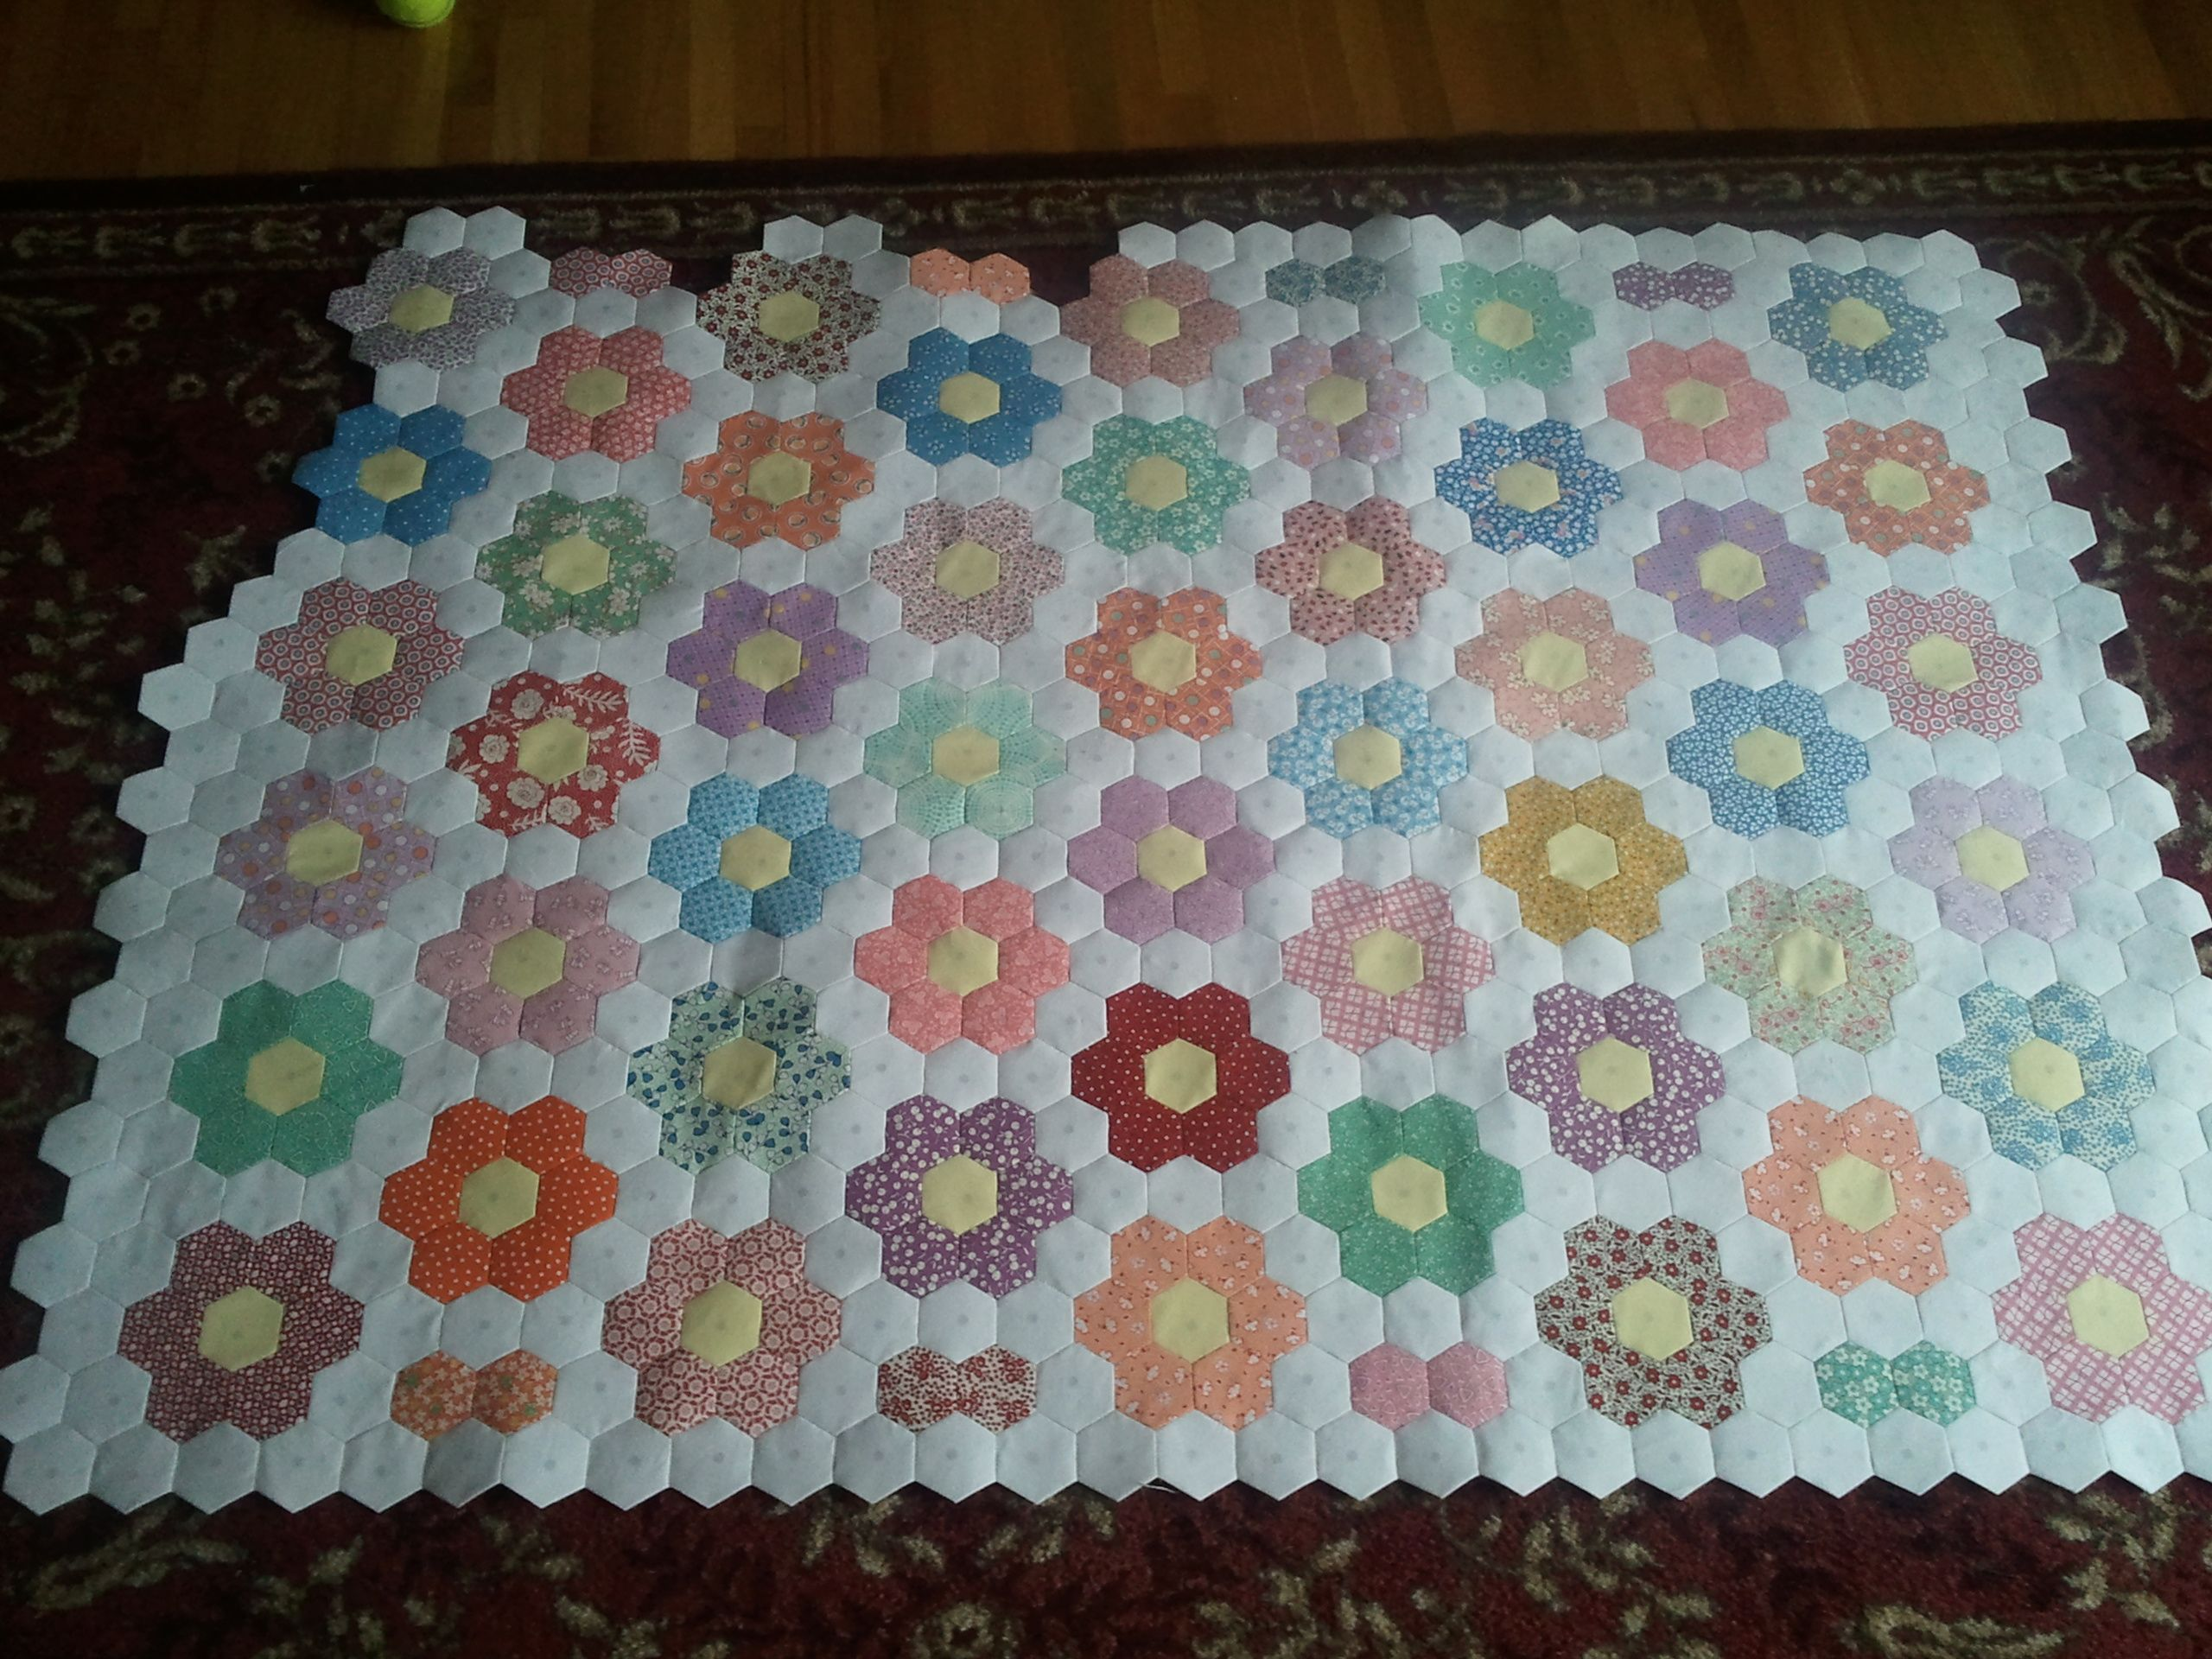 hexi quilt patterns | reply with quote | Hexi Quilt Ideas ... : flower garden quilts - Adamdwight.com